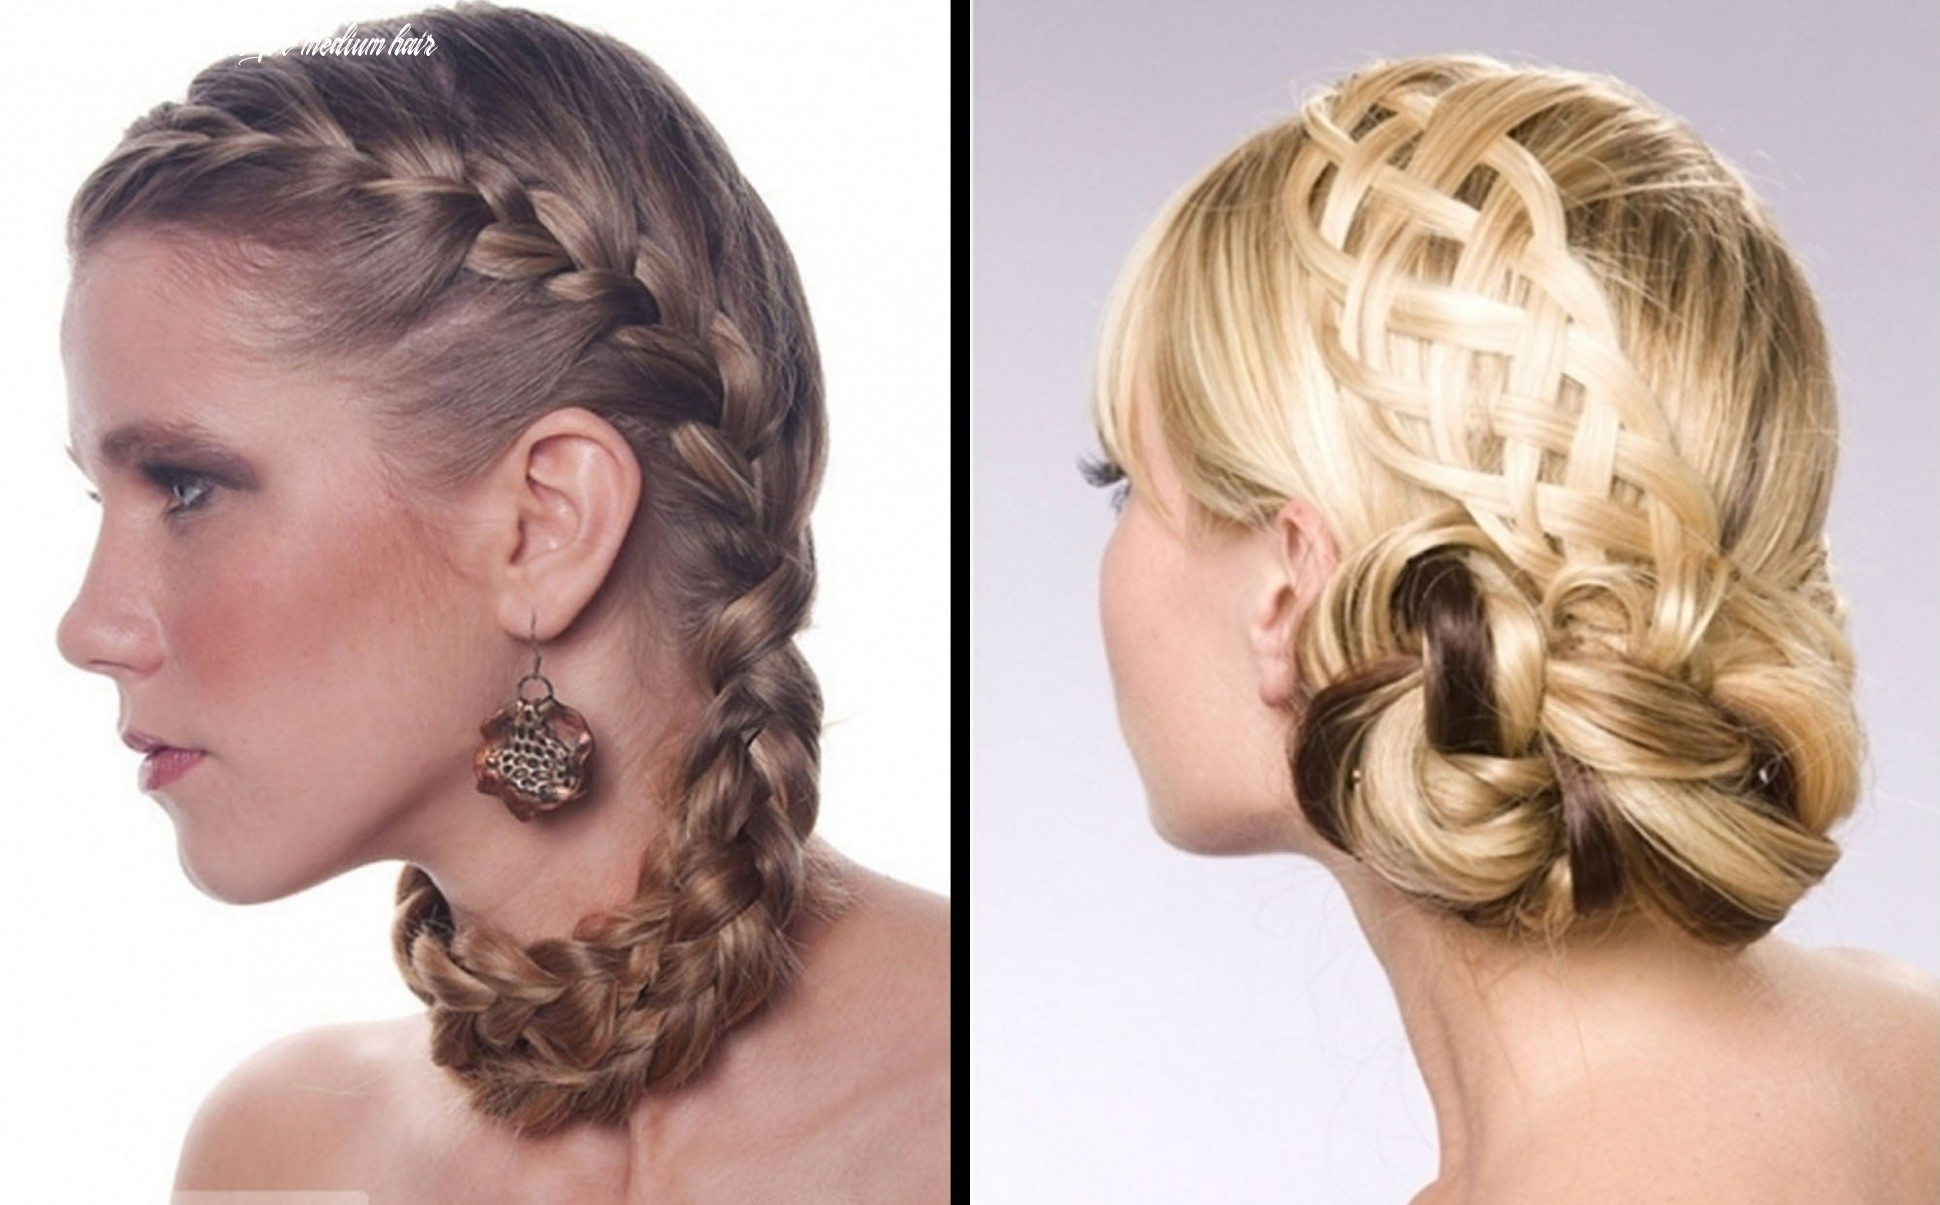 10 fresh homecoming hairstyles for short hair | prom hairstyles